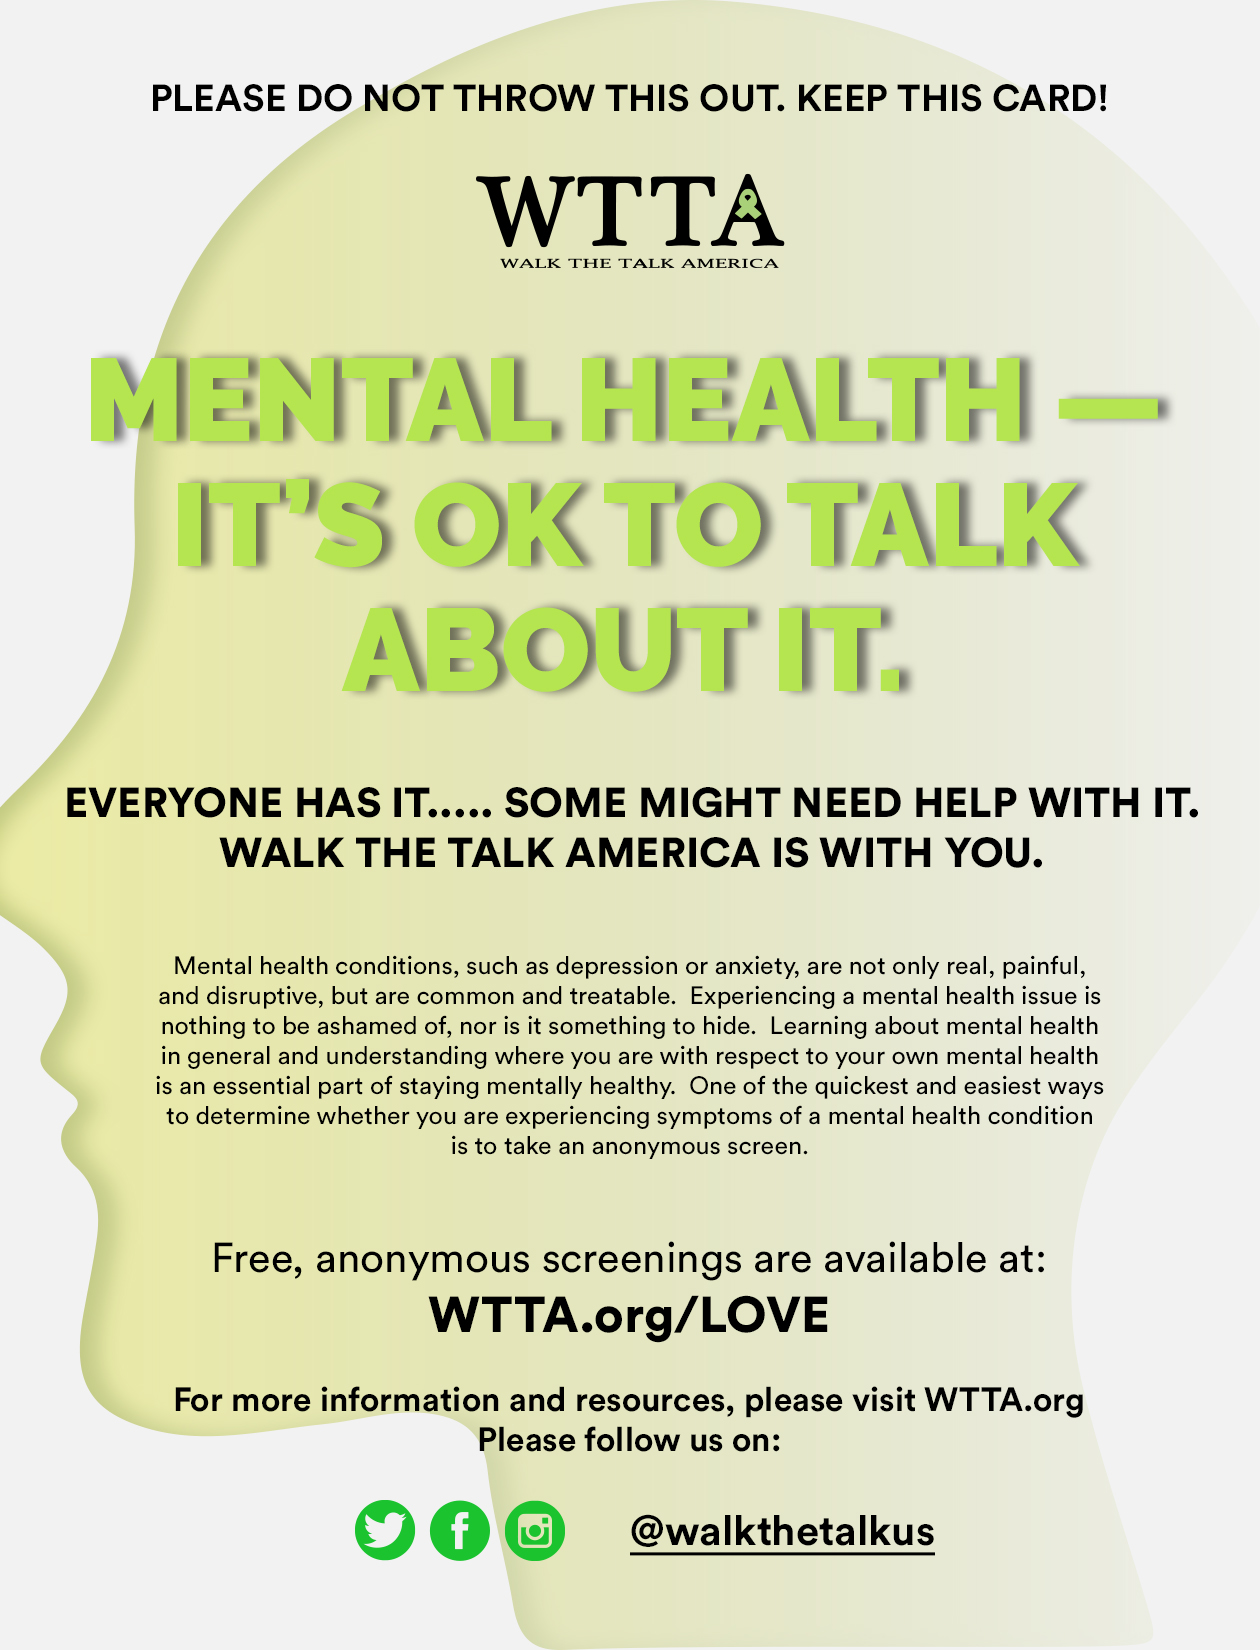 Walk the Talk America Partners with Eagle Imports to Promote Mental Health Awareness with Conscientious Flyer